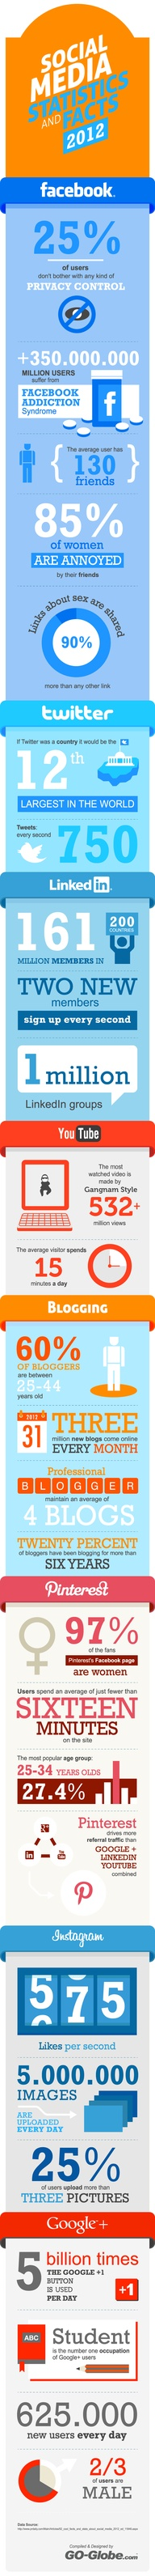 Social media facts and stats for 2012